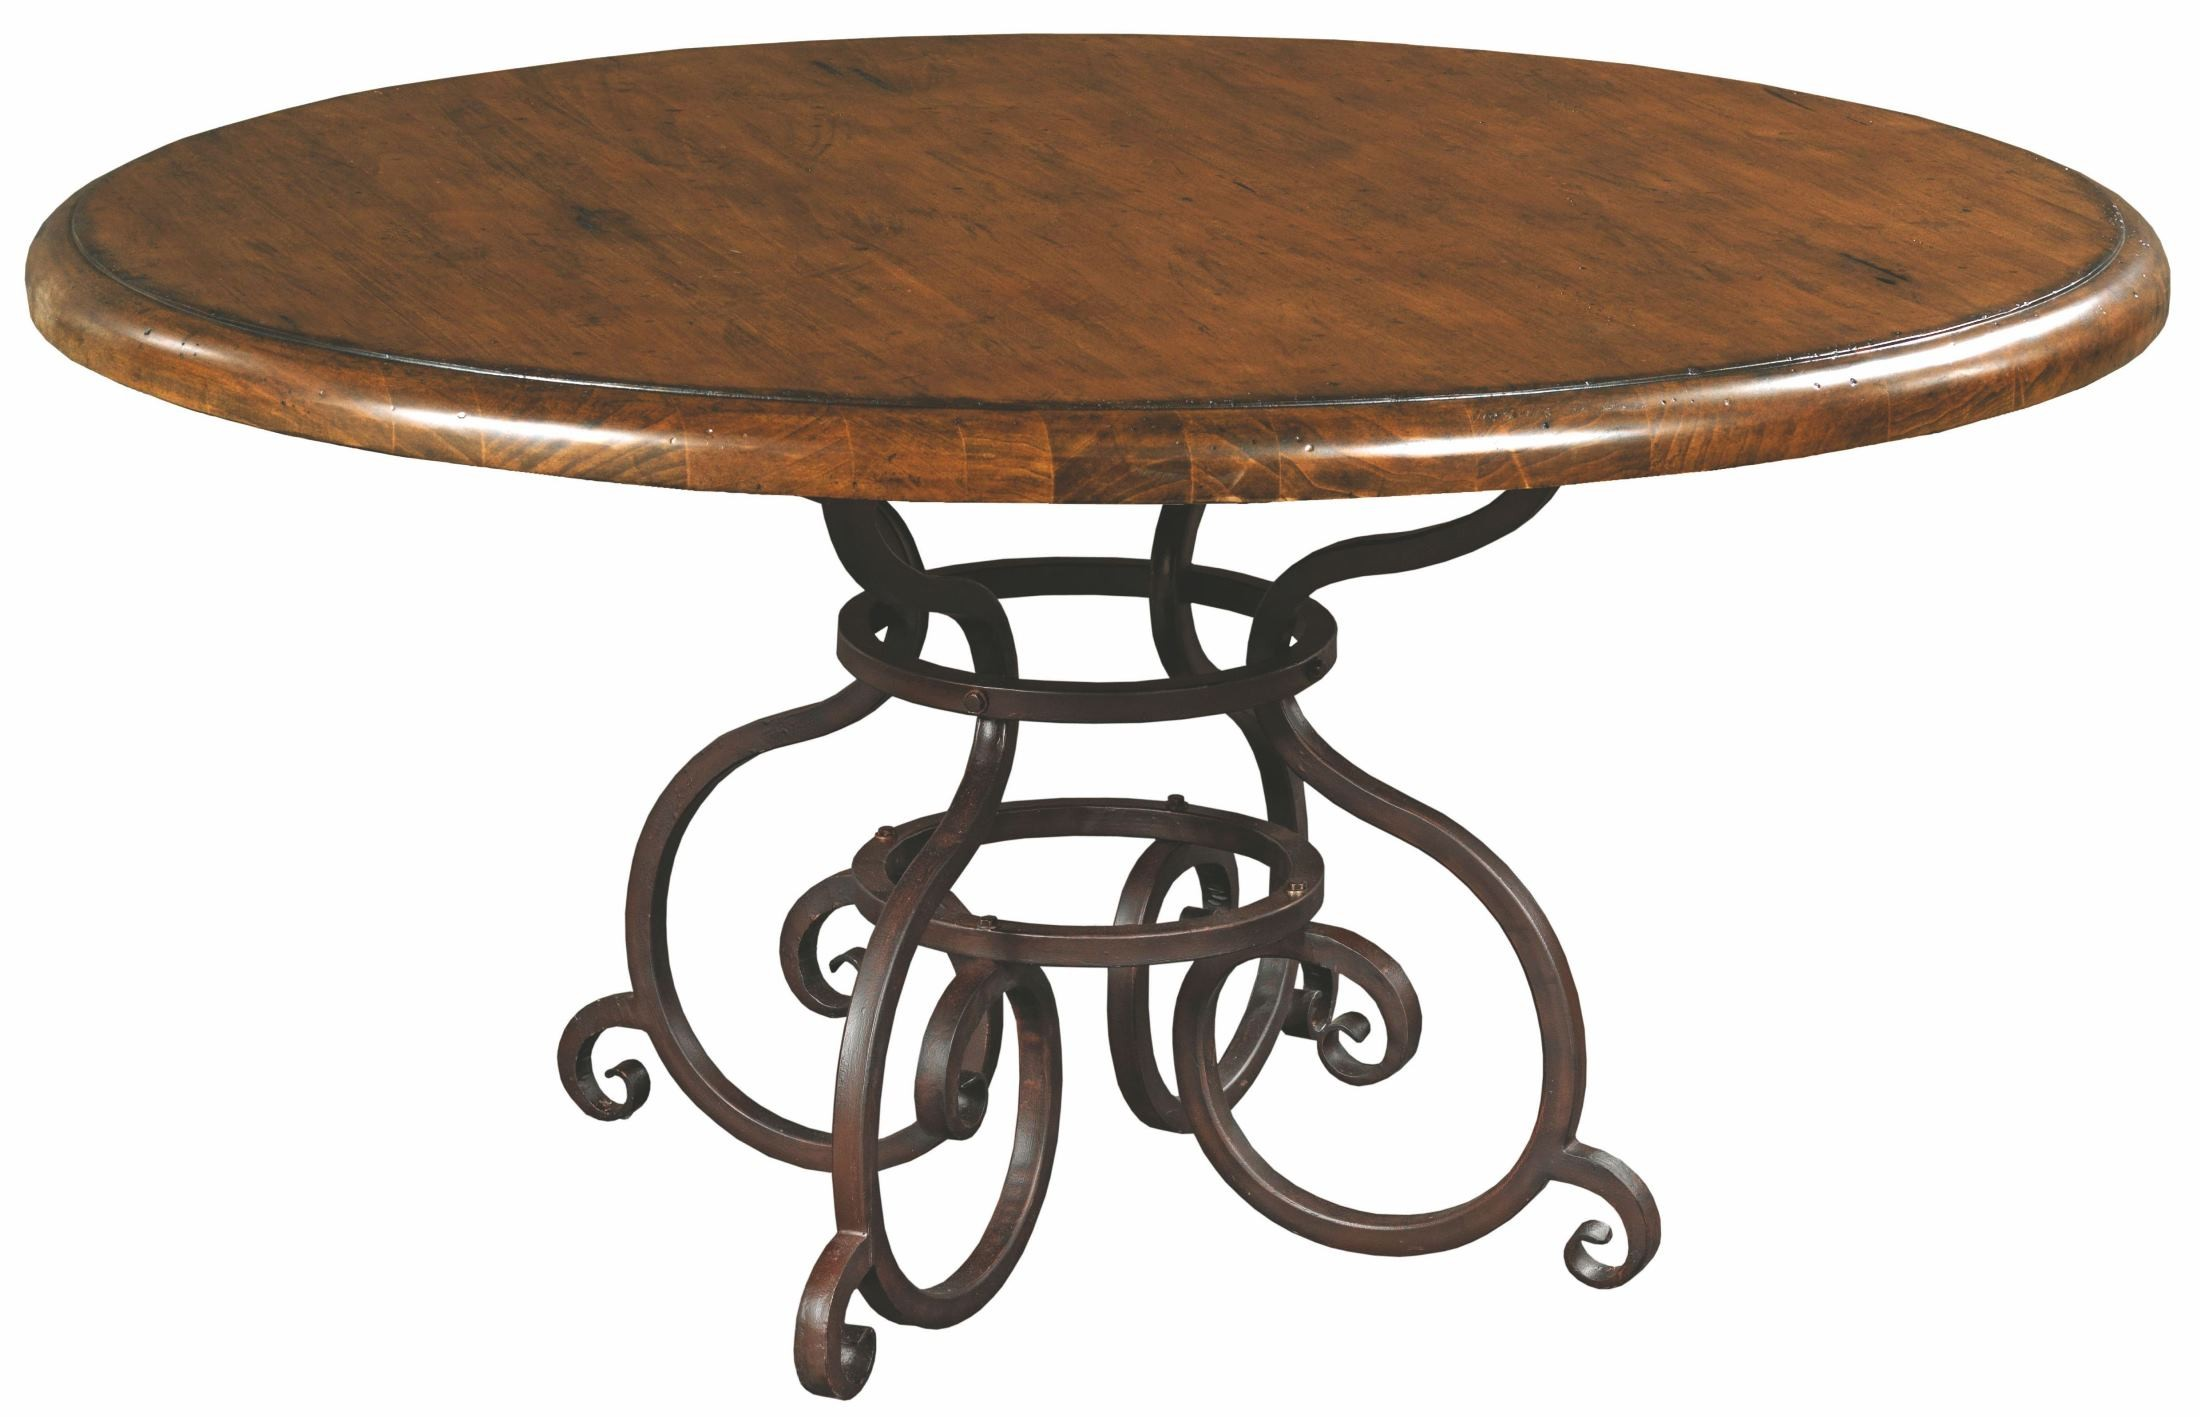 artisans shoppe 60 tobacco round dining table with metal base from kincaid 90 2175p coleman. Black Bedroom Furniture Sets. Home Design Ideas